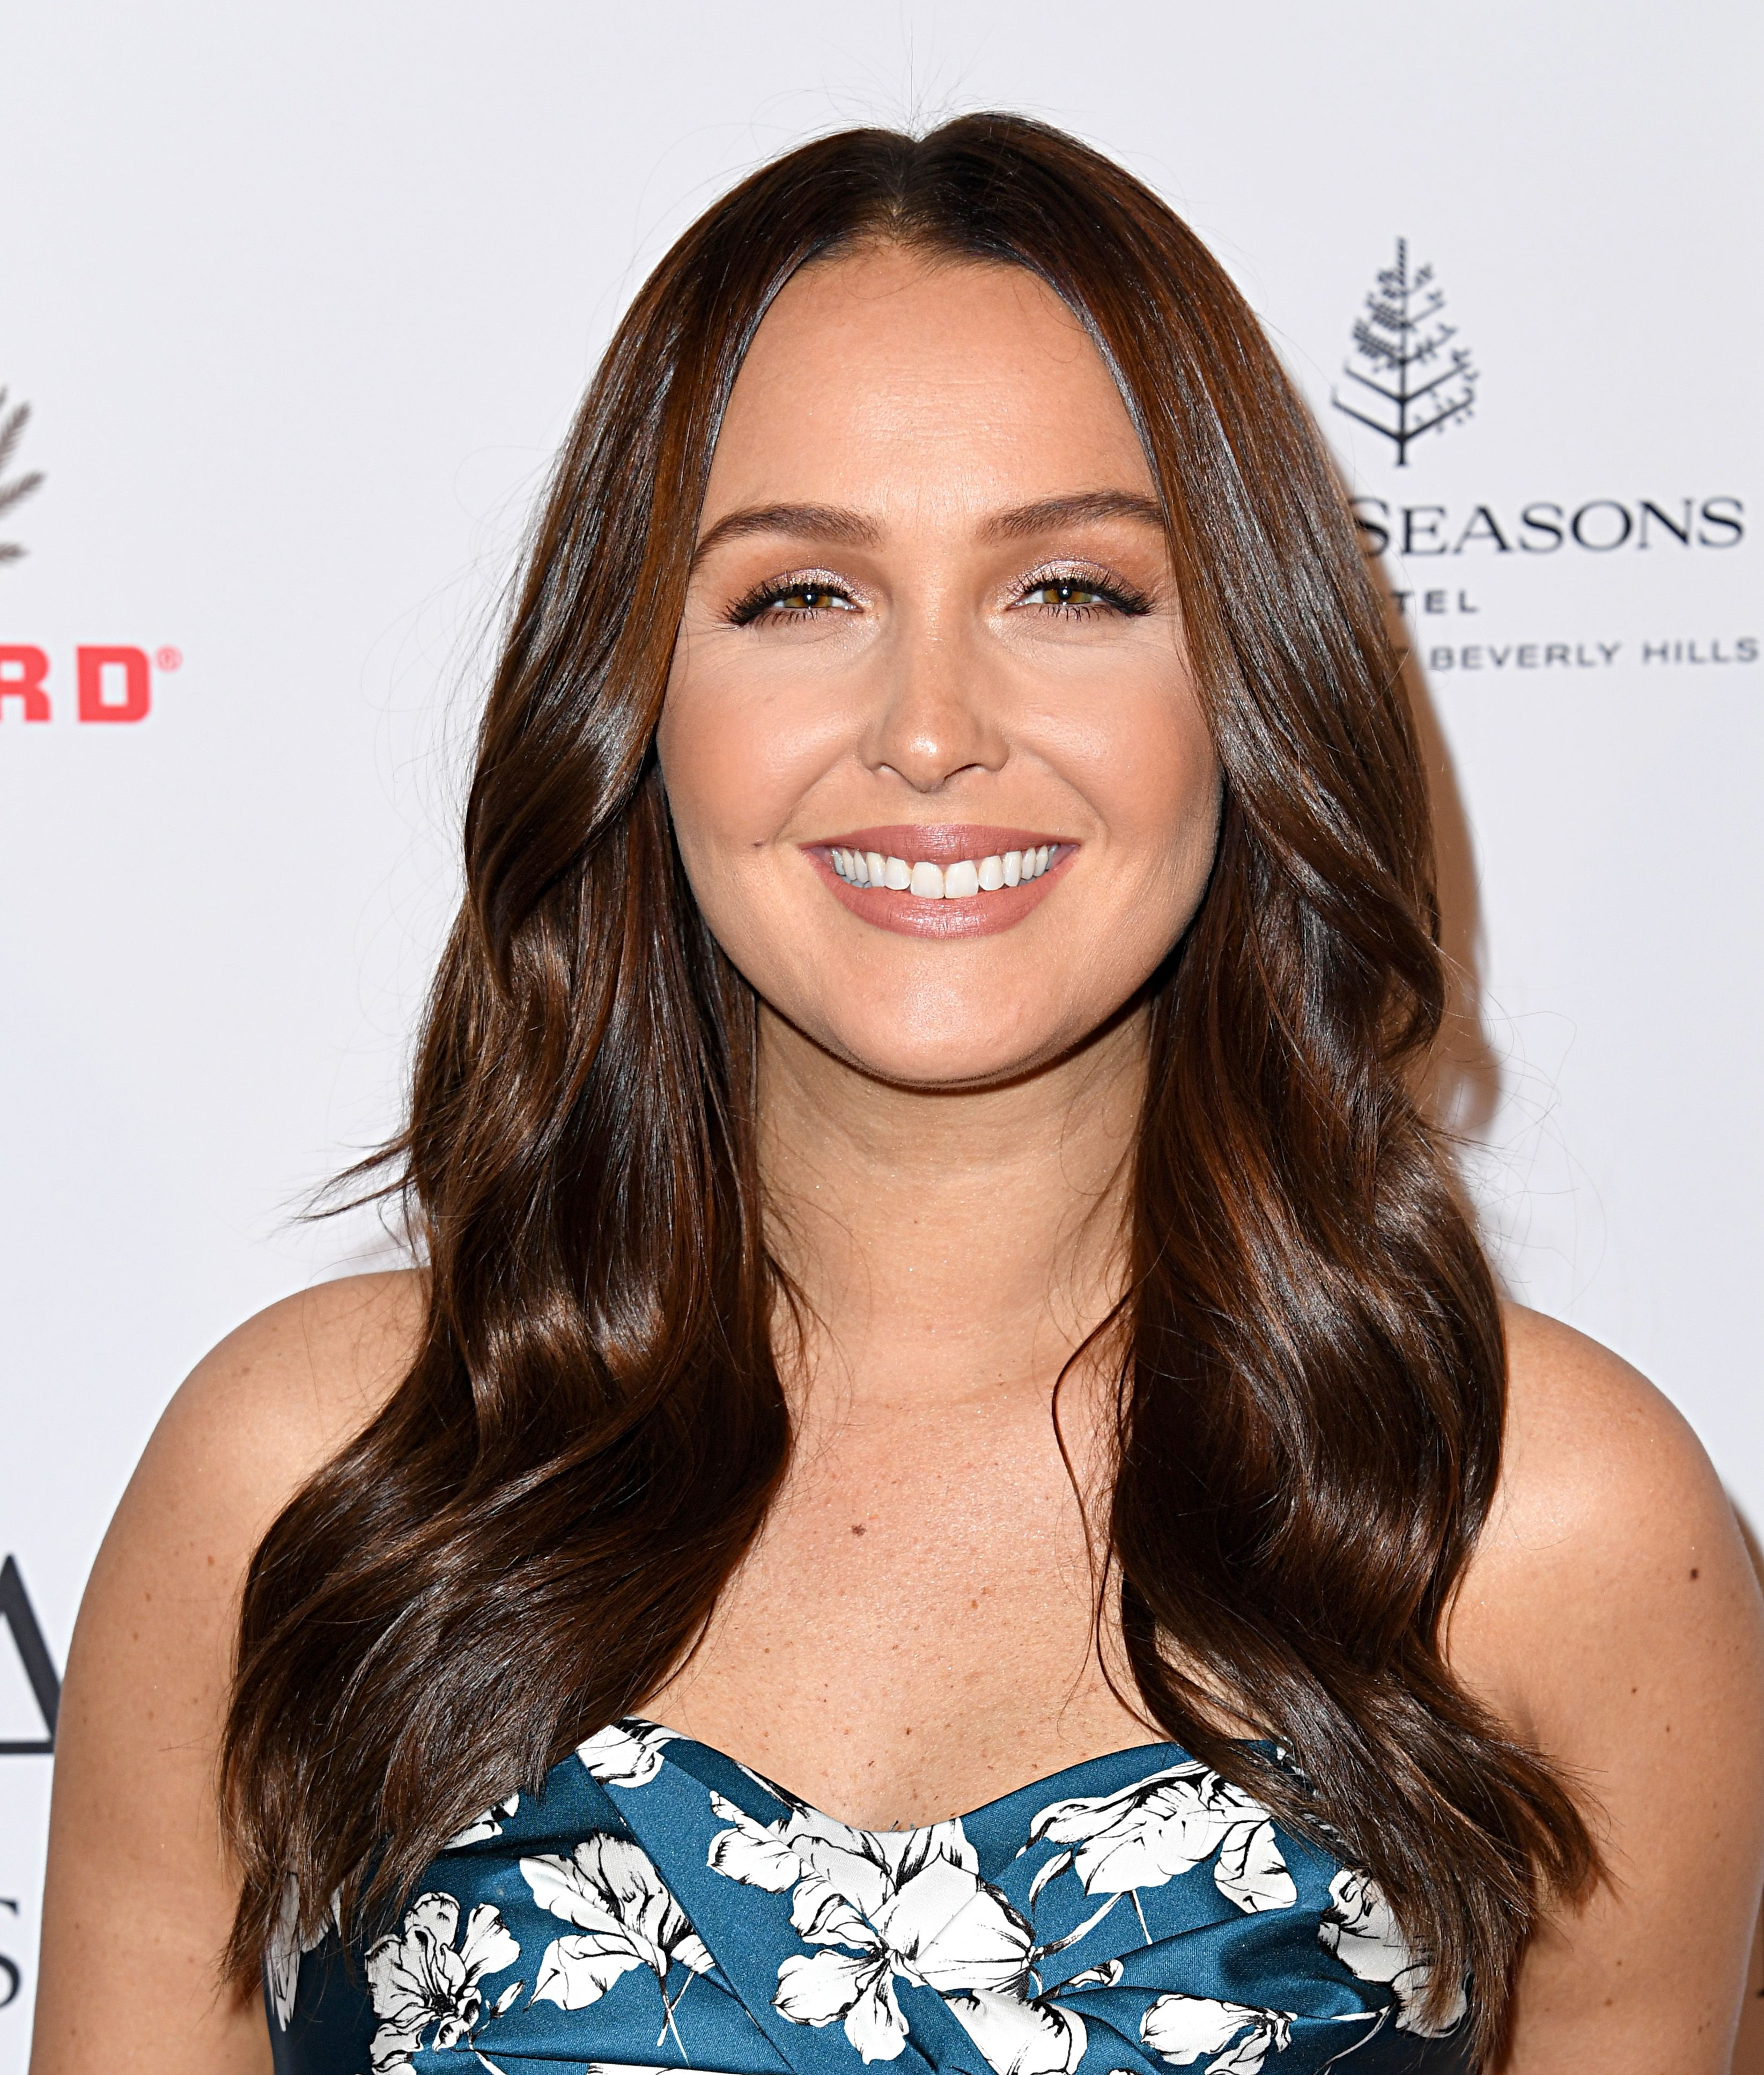 Camilla Luddington at the BAFTA Los Angeles Tea Party at Four Seasons Hotel in Beverly Hills on January 04, 2020 | Photo: Getty Images